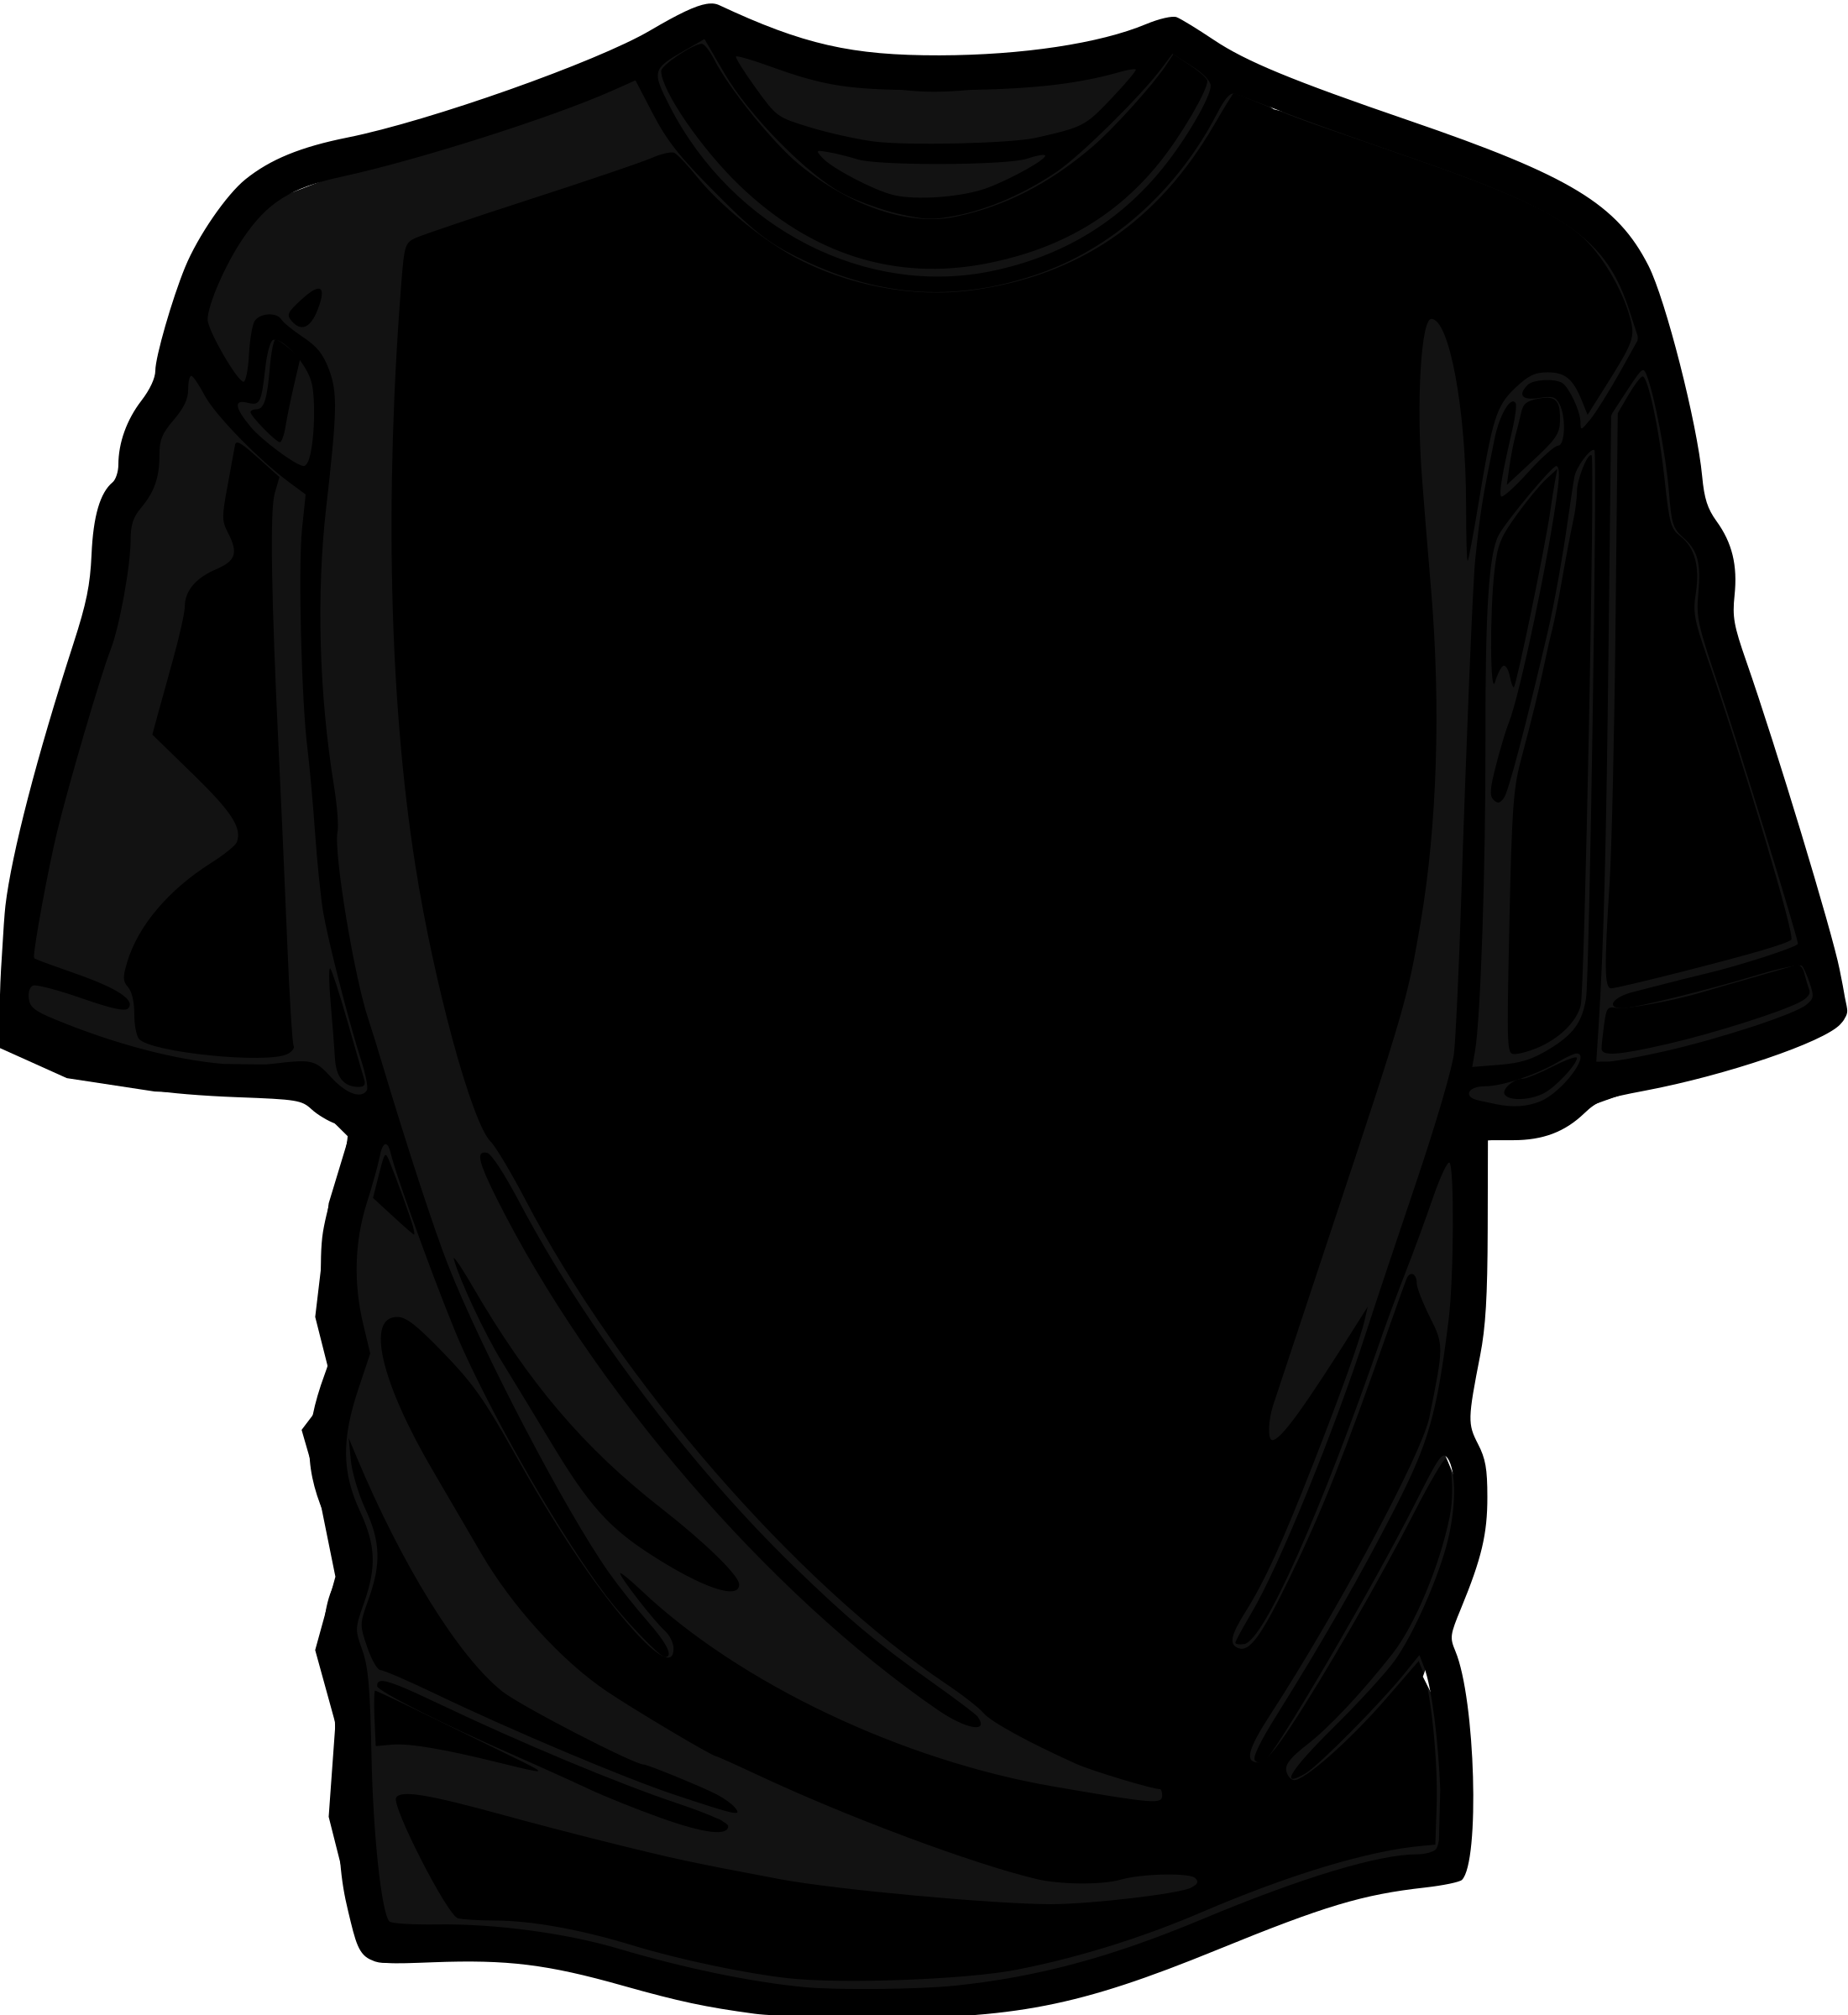 T-Shirt-black-02 by asrafil